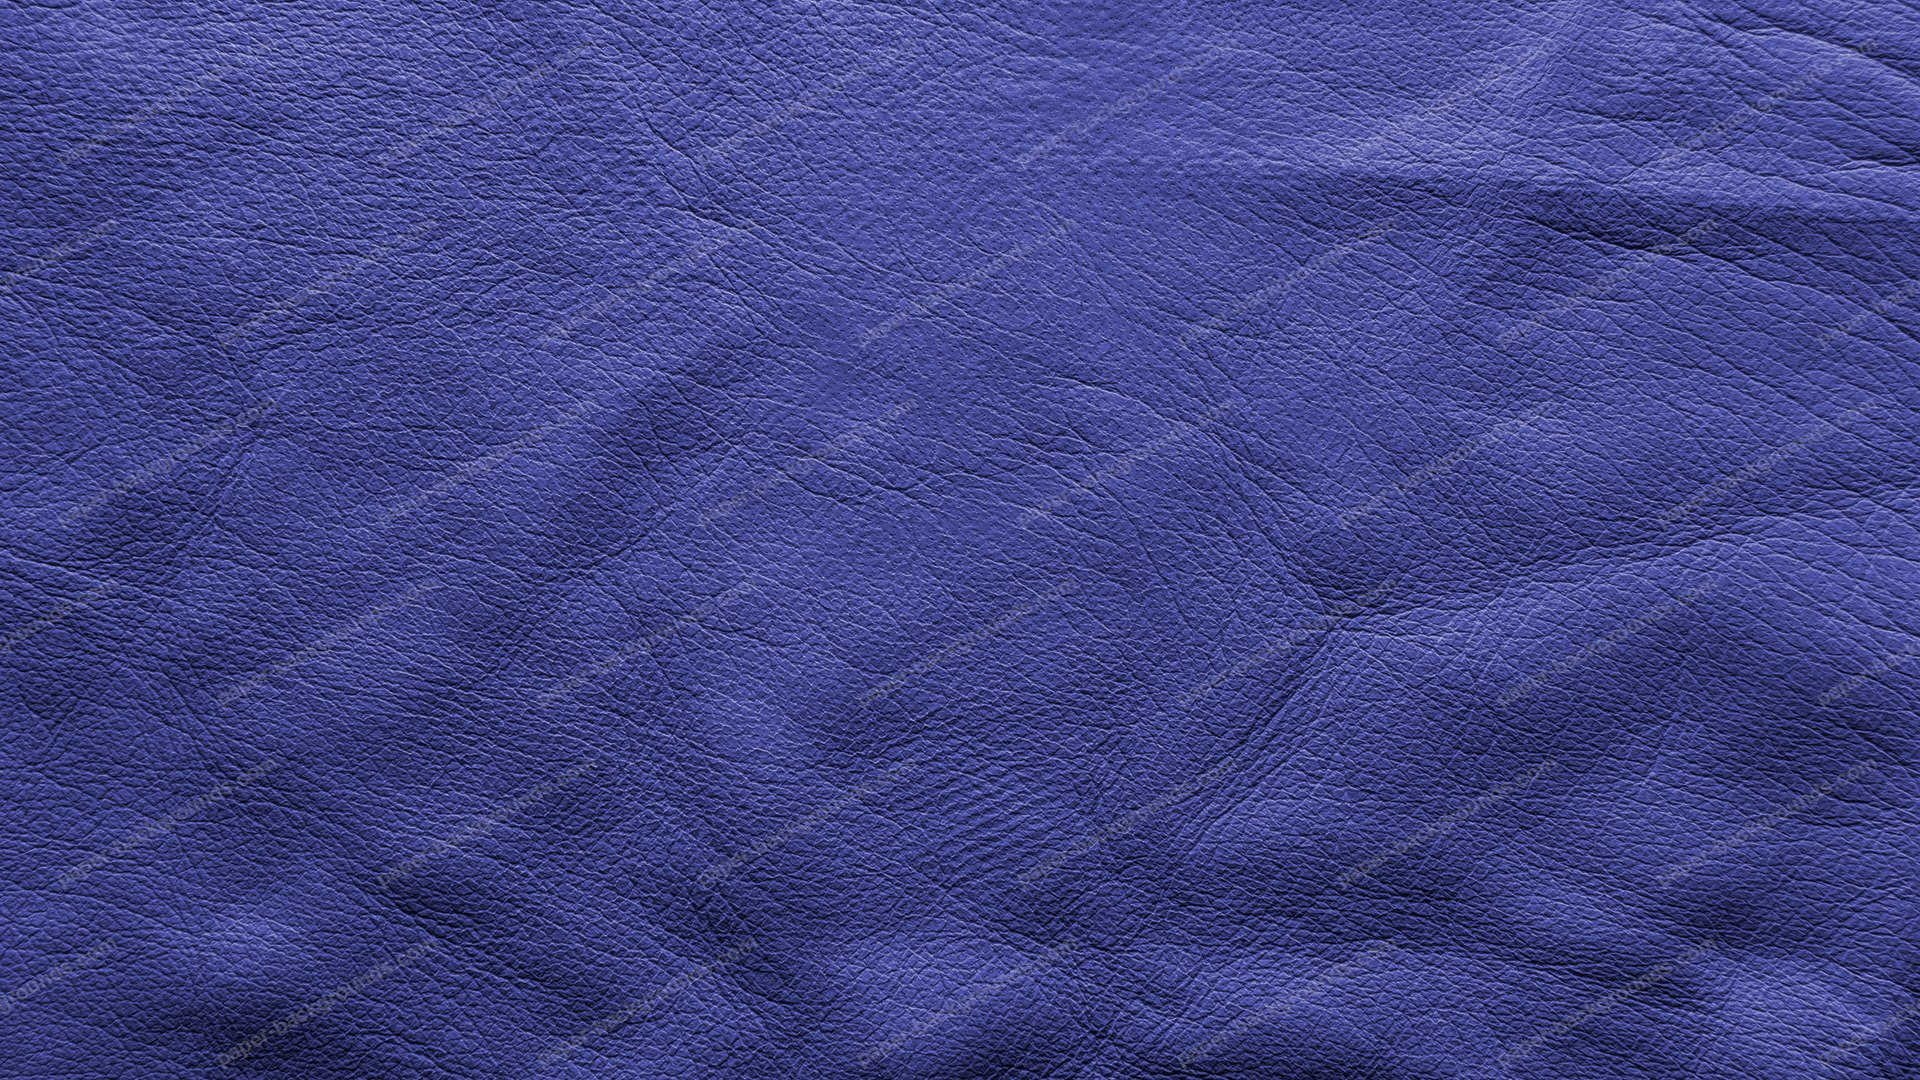 Indigo Blue Soft Leather Background HD 1920 x 1080p